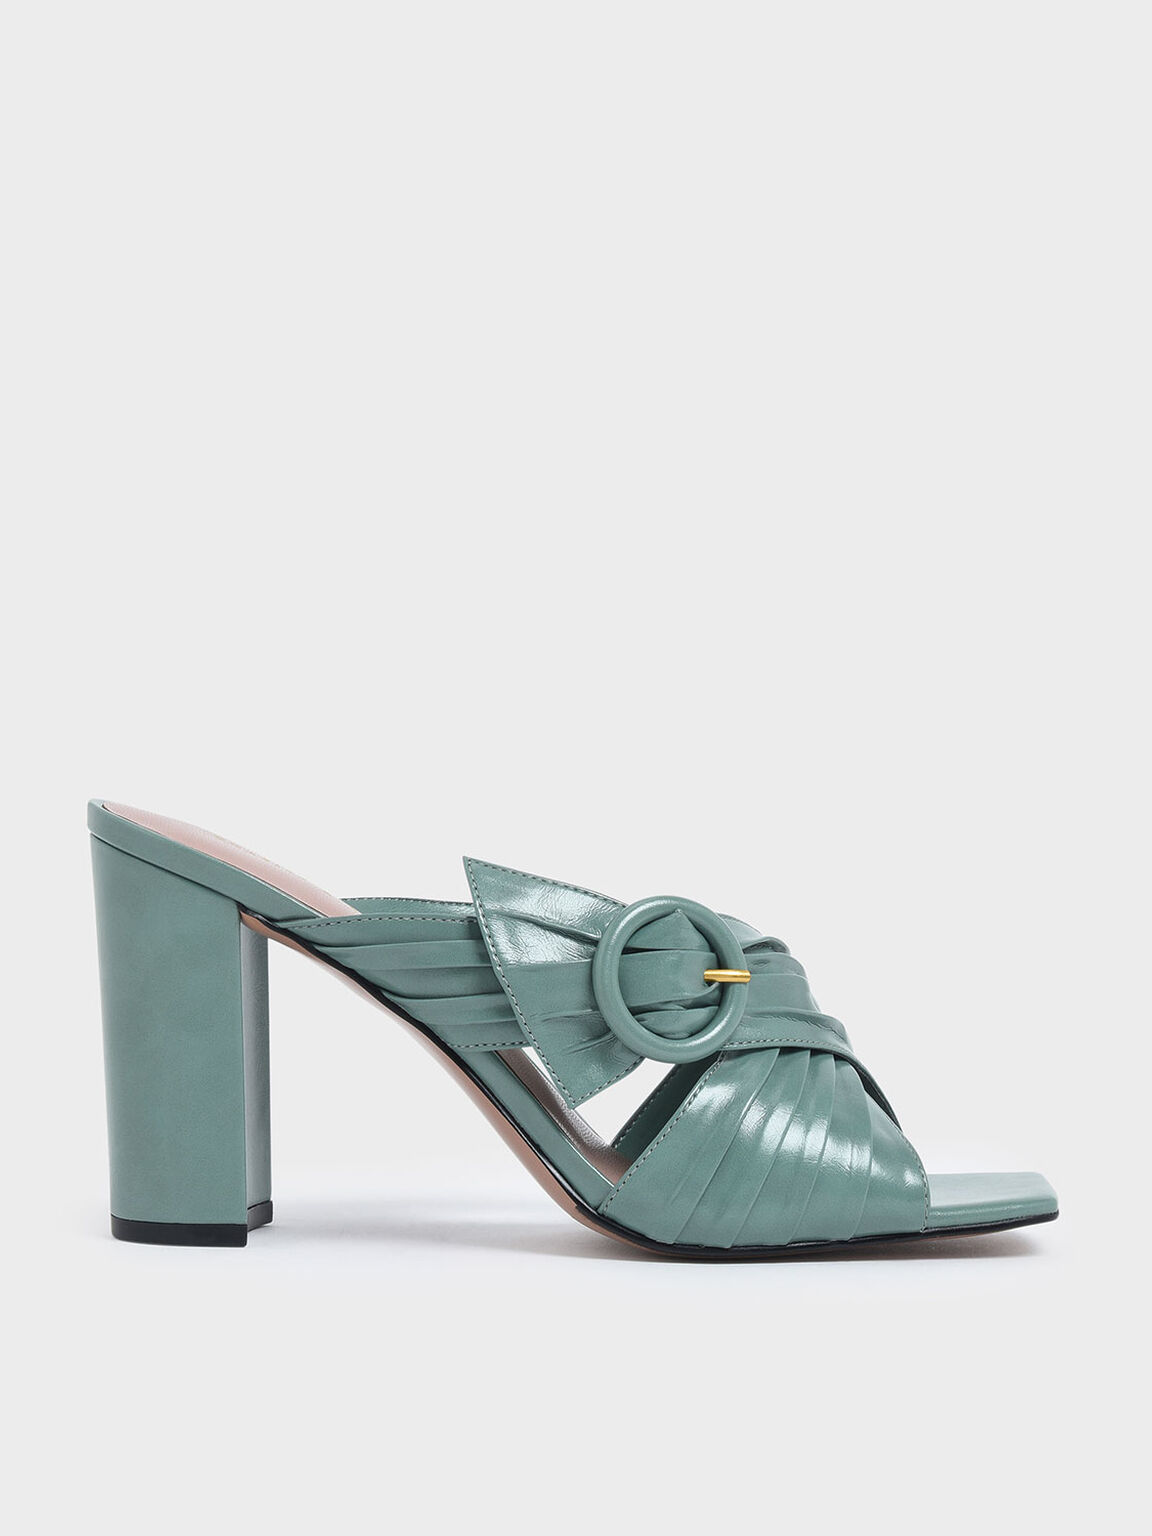 Criss Cross Pleated Buckle Strap Heeled Slide Sandals, Green, hi-res